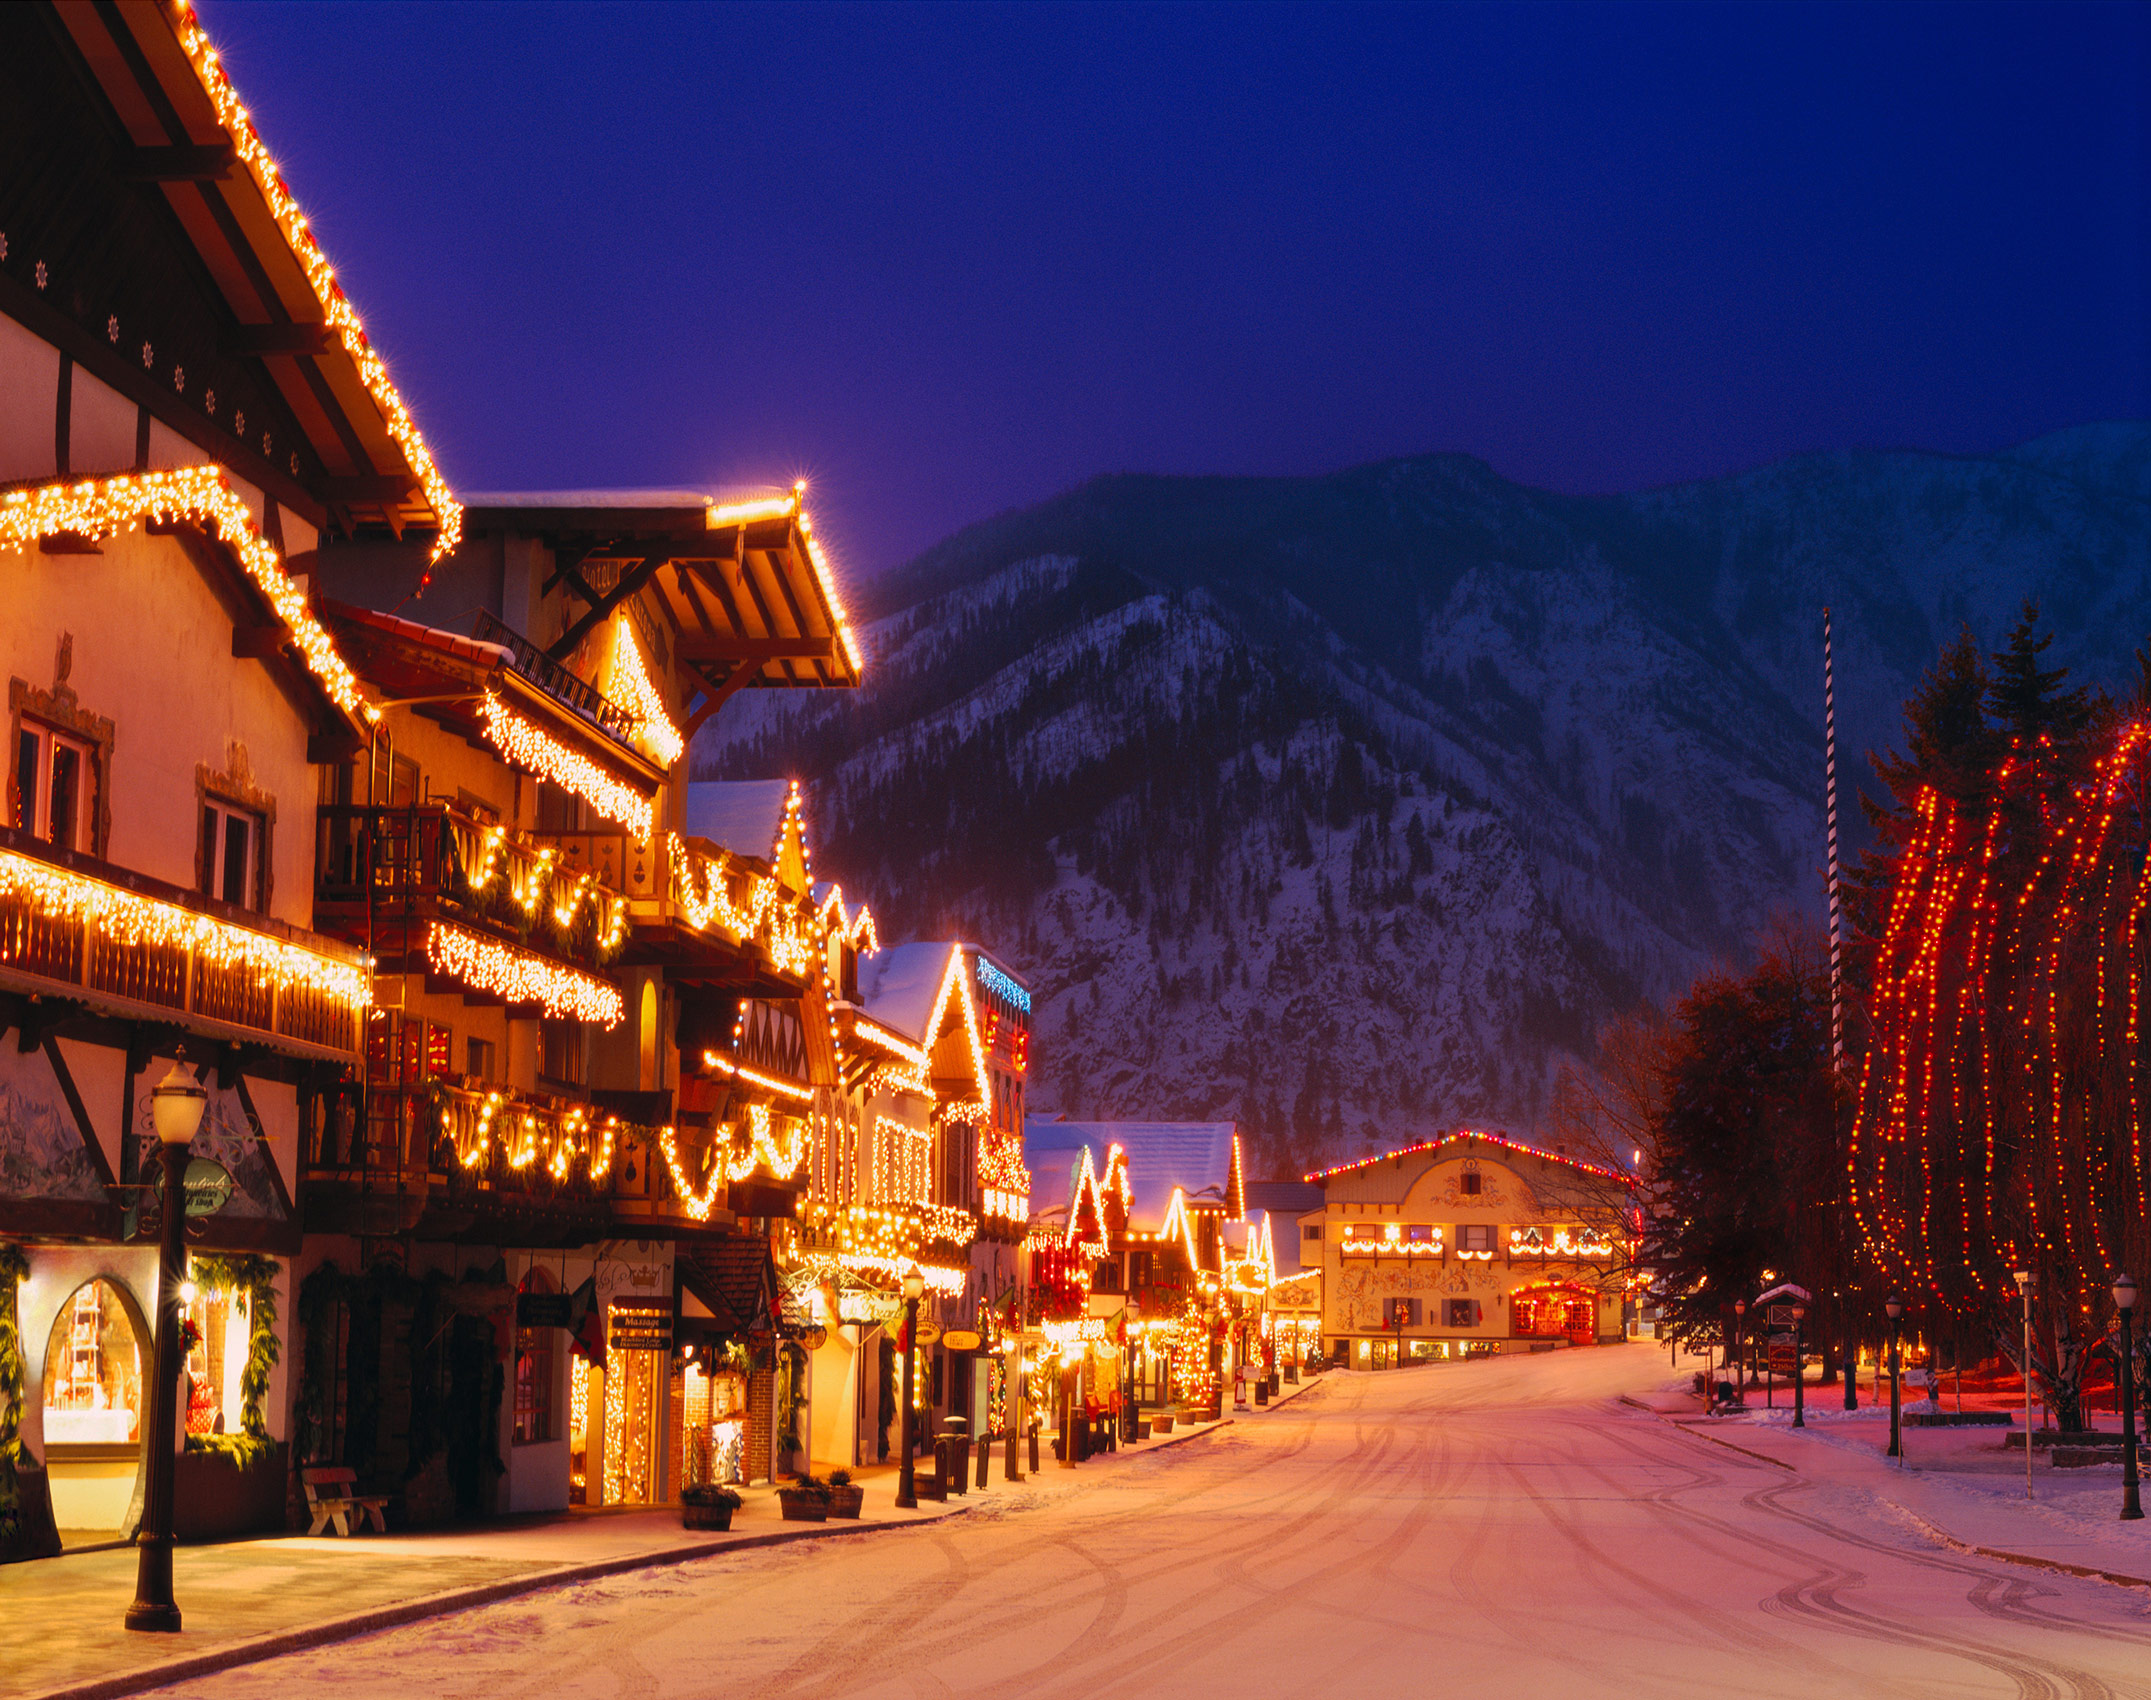 Christmas lights in Leavenworth at night